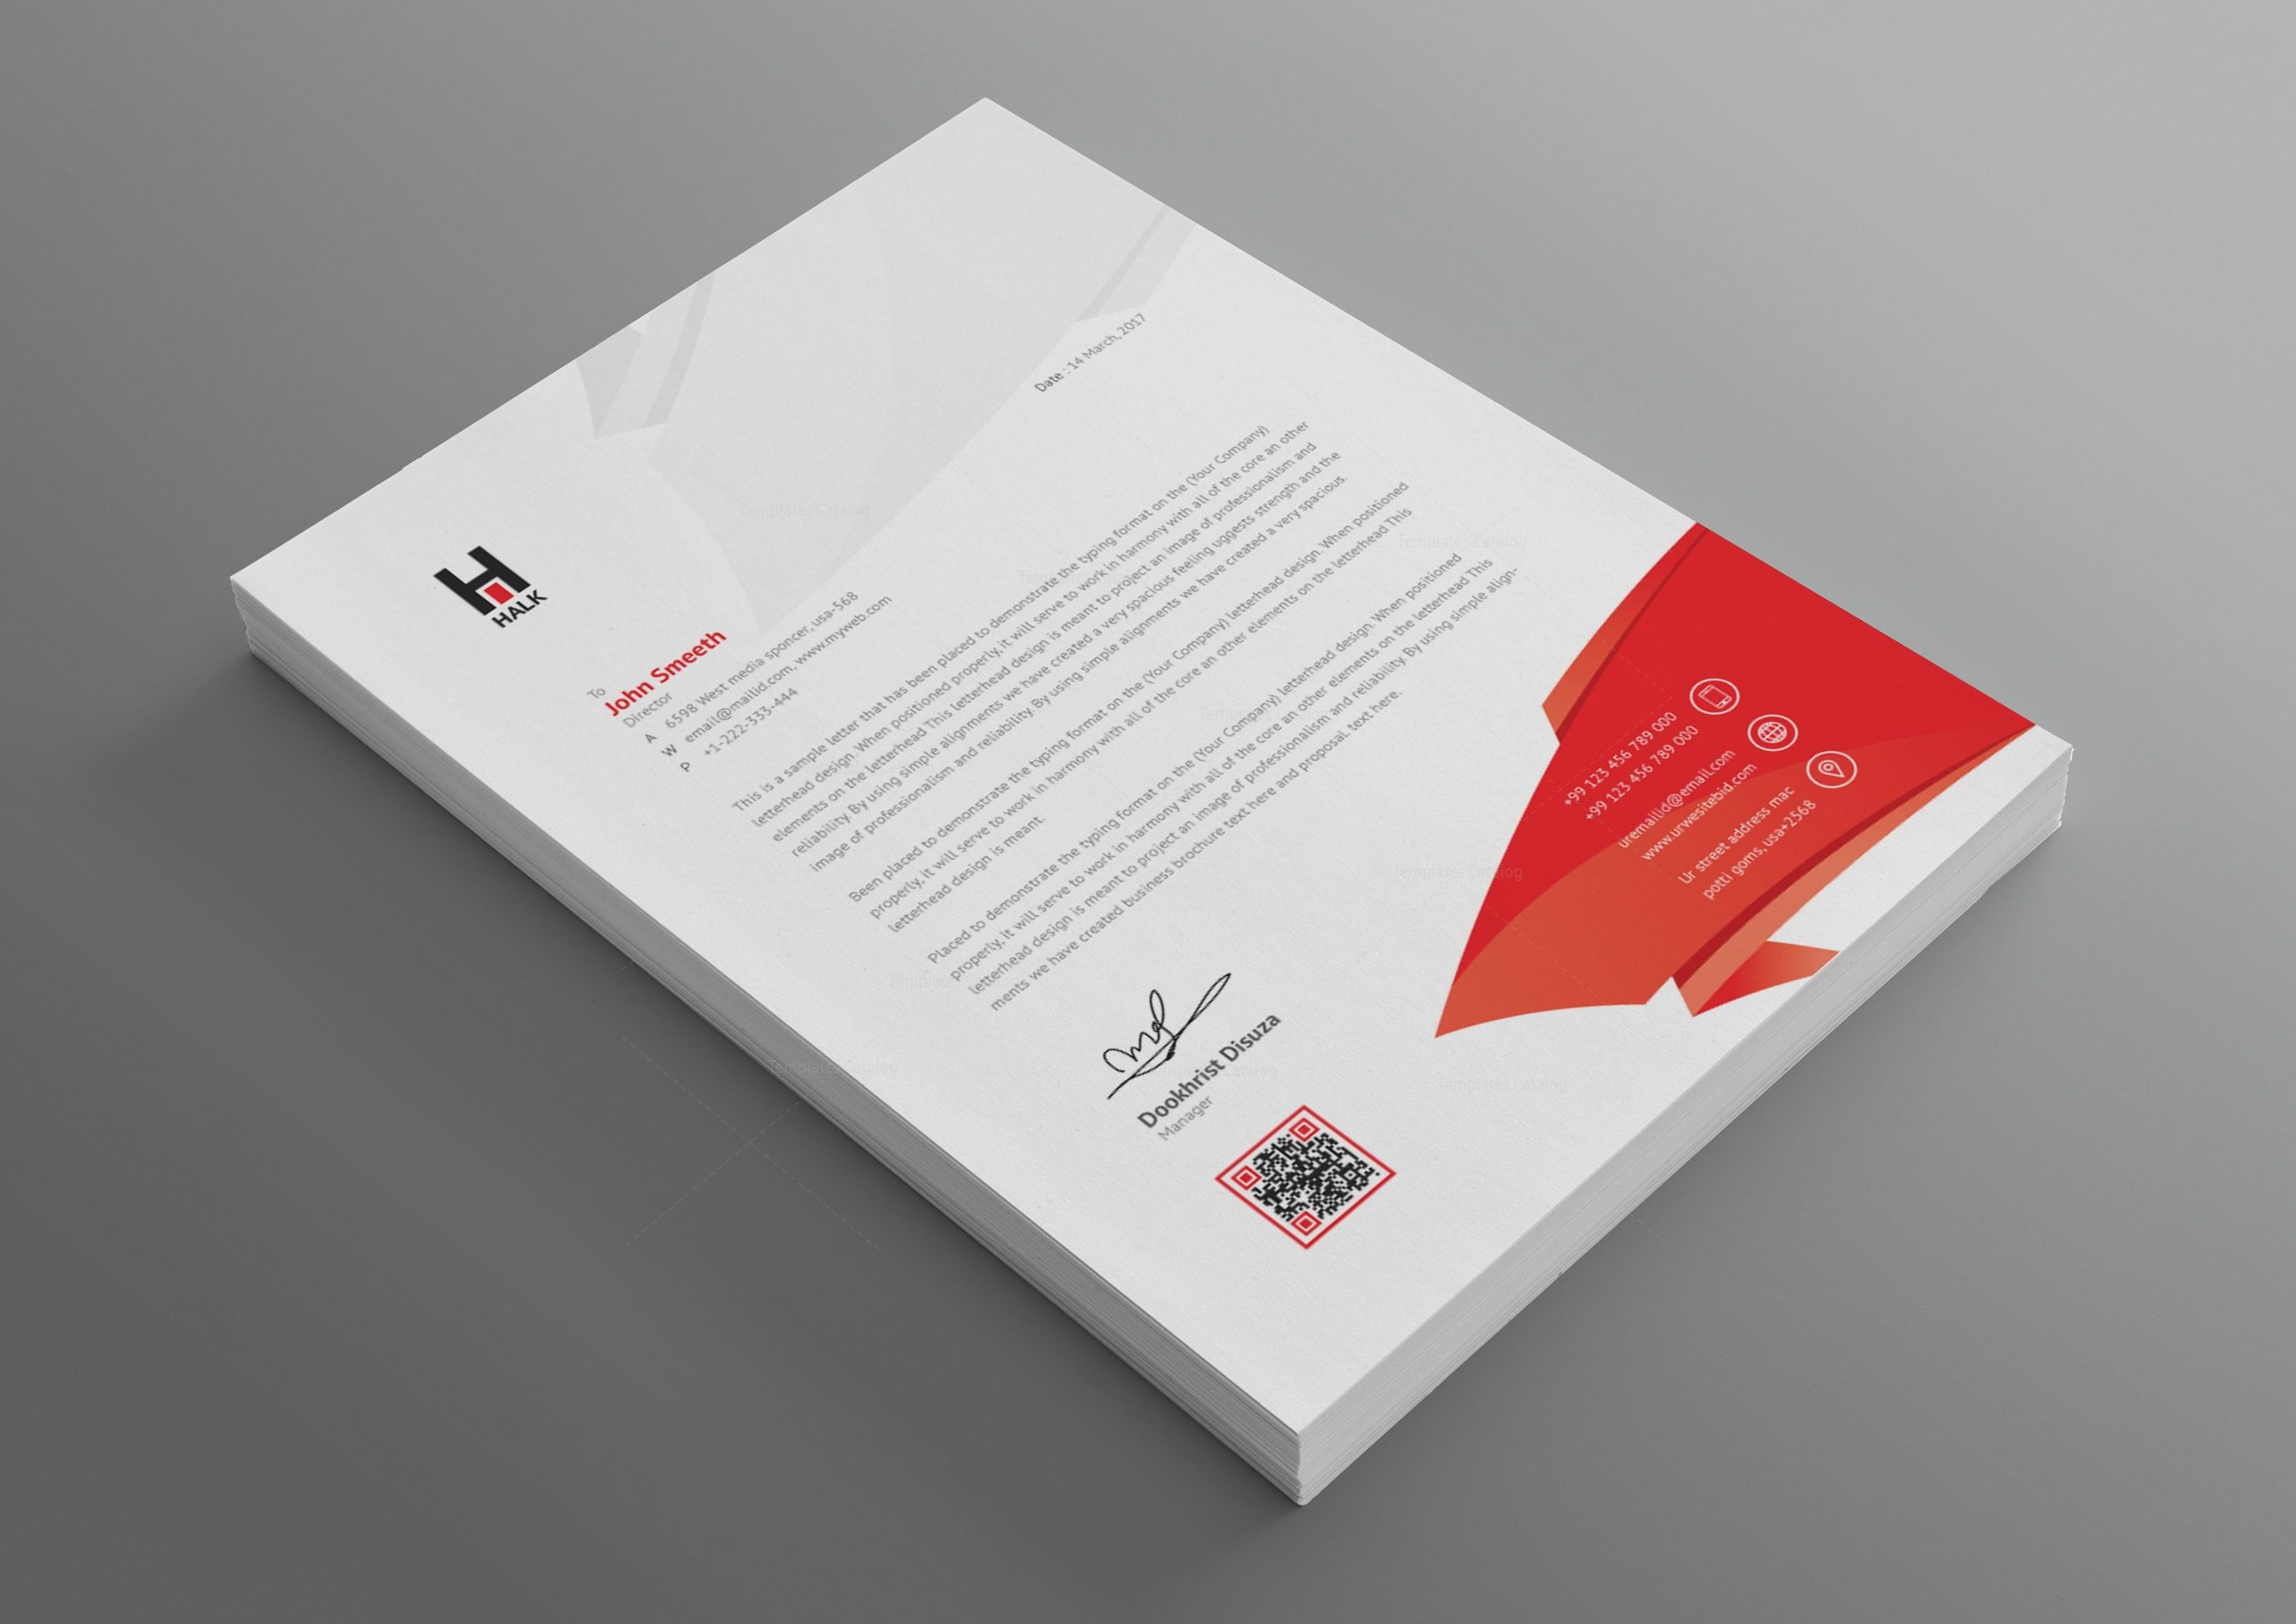 Aether professional corporate letterhead template 001025 template aether professional corporate letterhead template 4 spiritdancerdesigns Choice Image